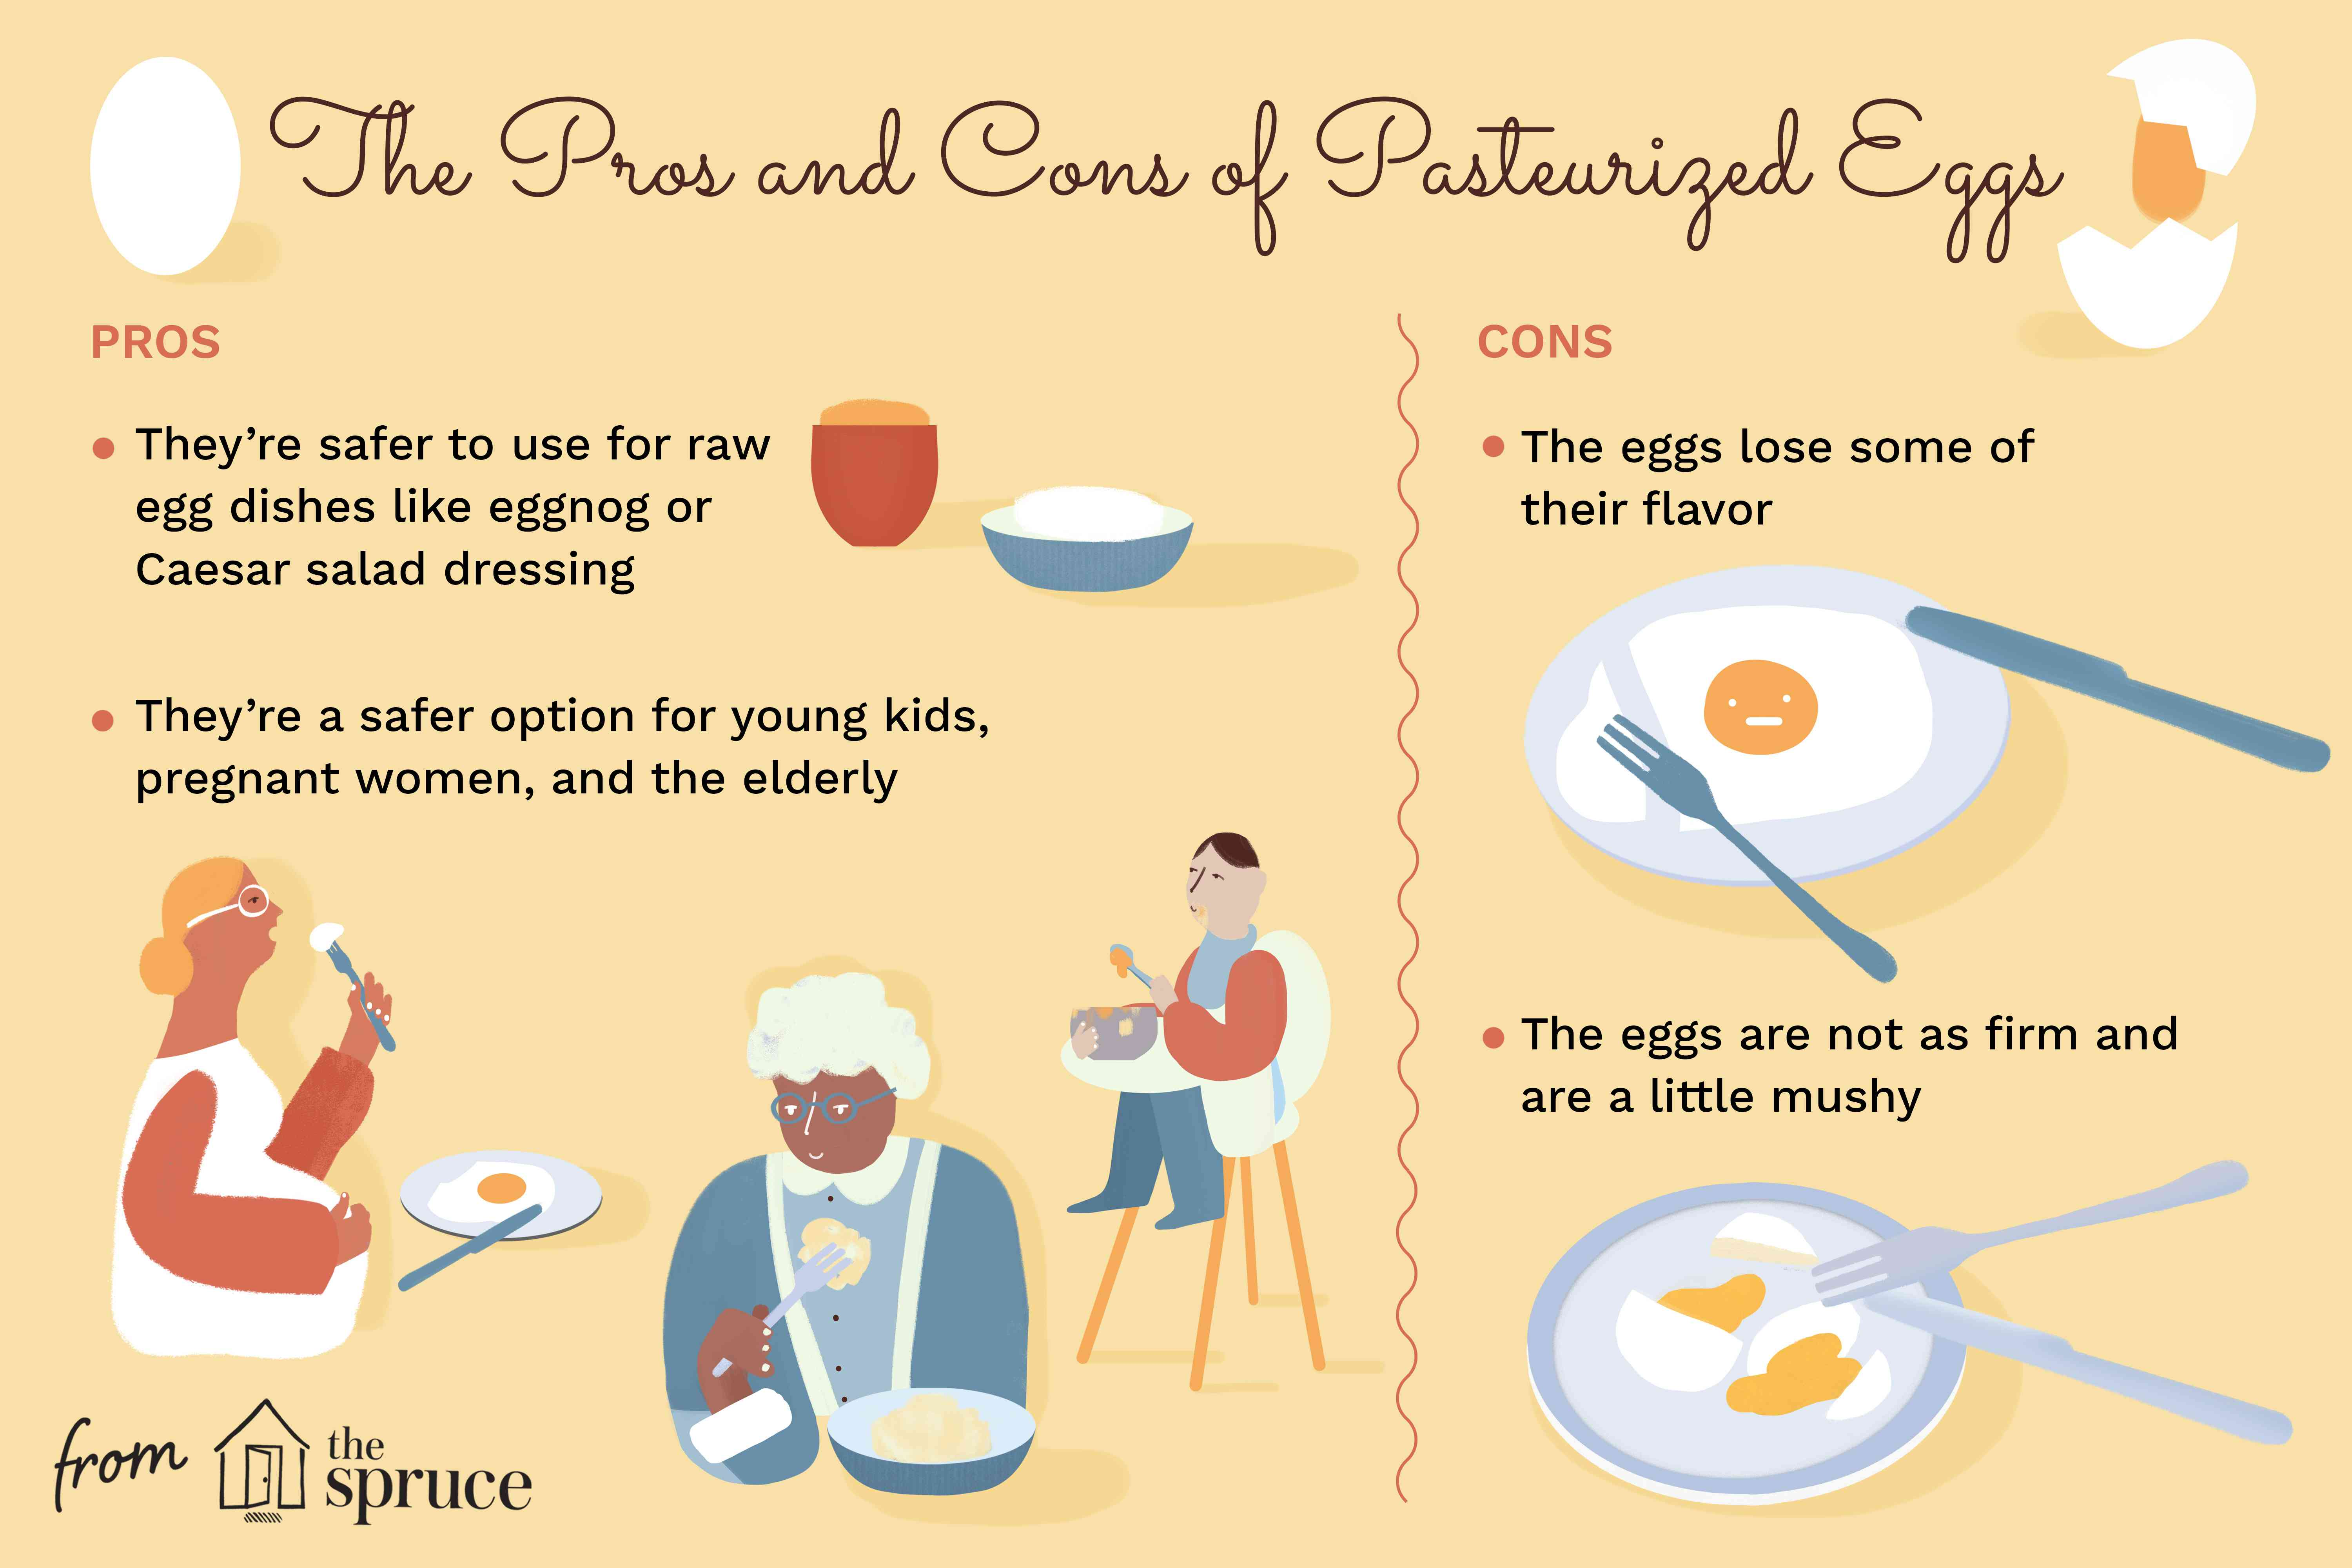 illustration showcasing pros and cons of pasteurized eggs